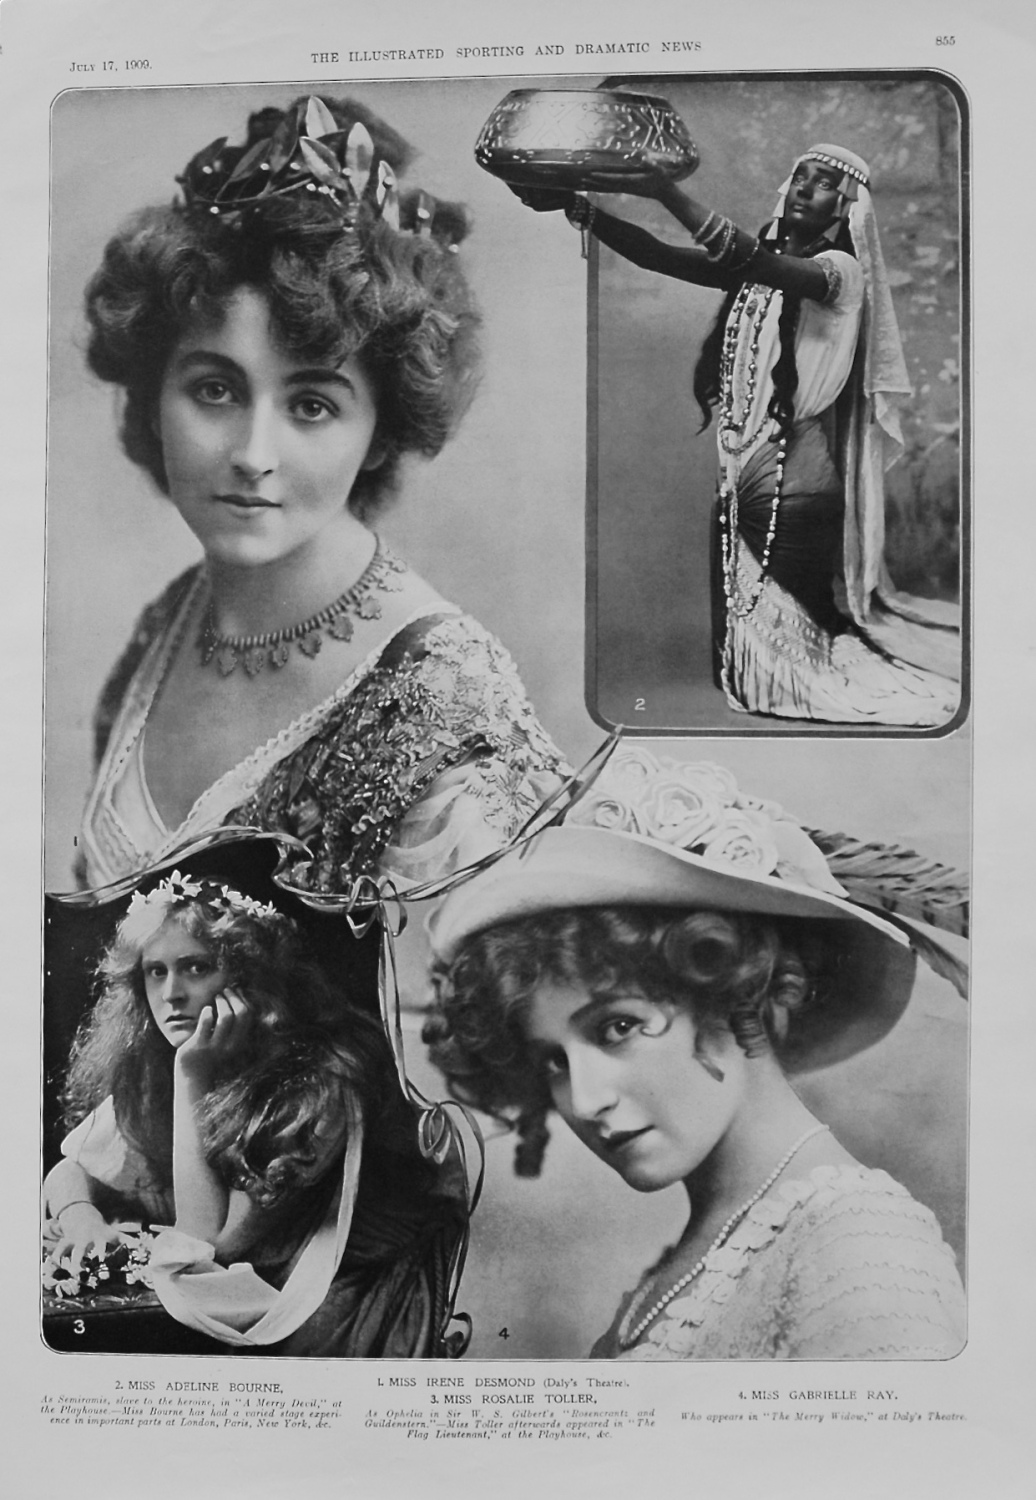 Actresses from the Stage. July 17th 1909.